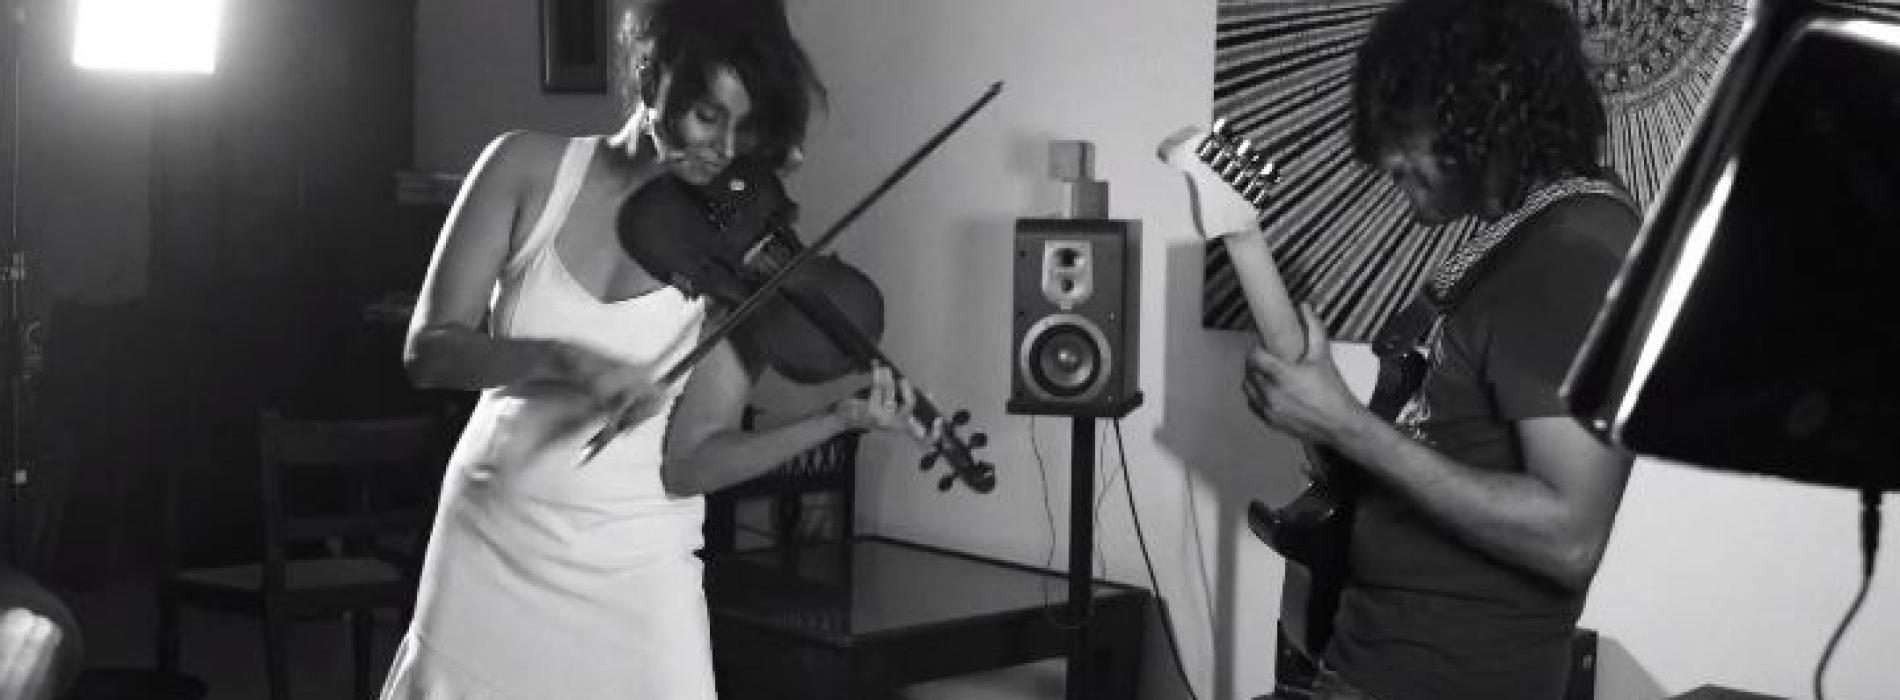 New Music : Sweet Child O' Mine – Guns n' Roses (Violin Cover) Mad Violinist Ft Andrew Obeyesekere